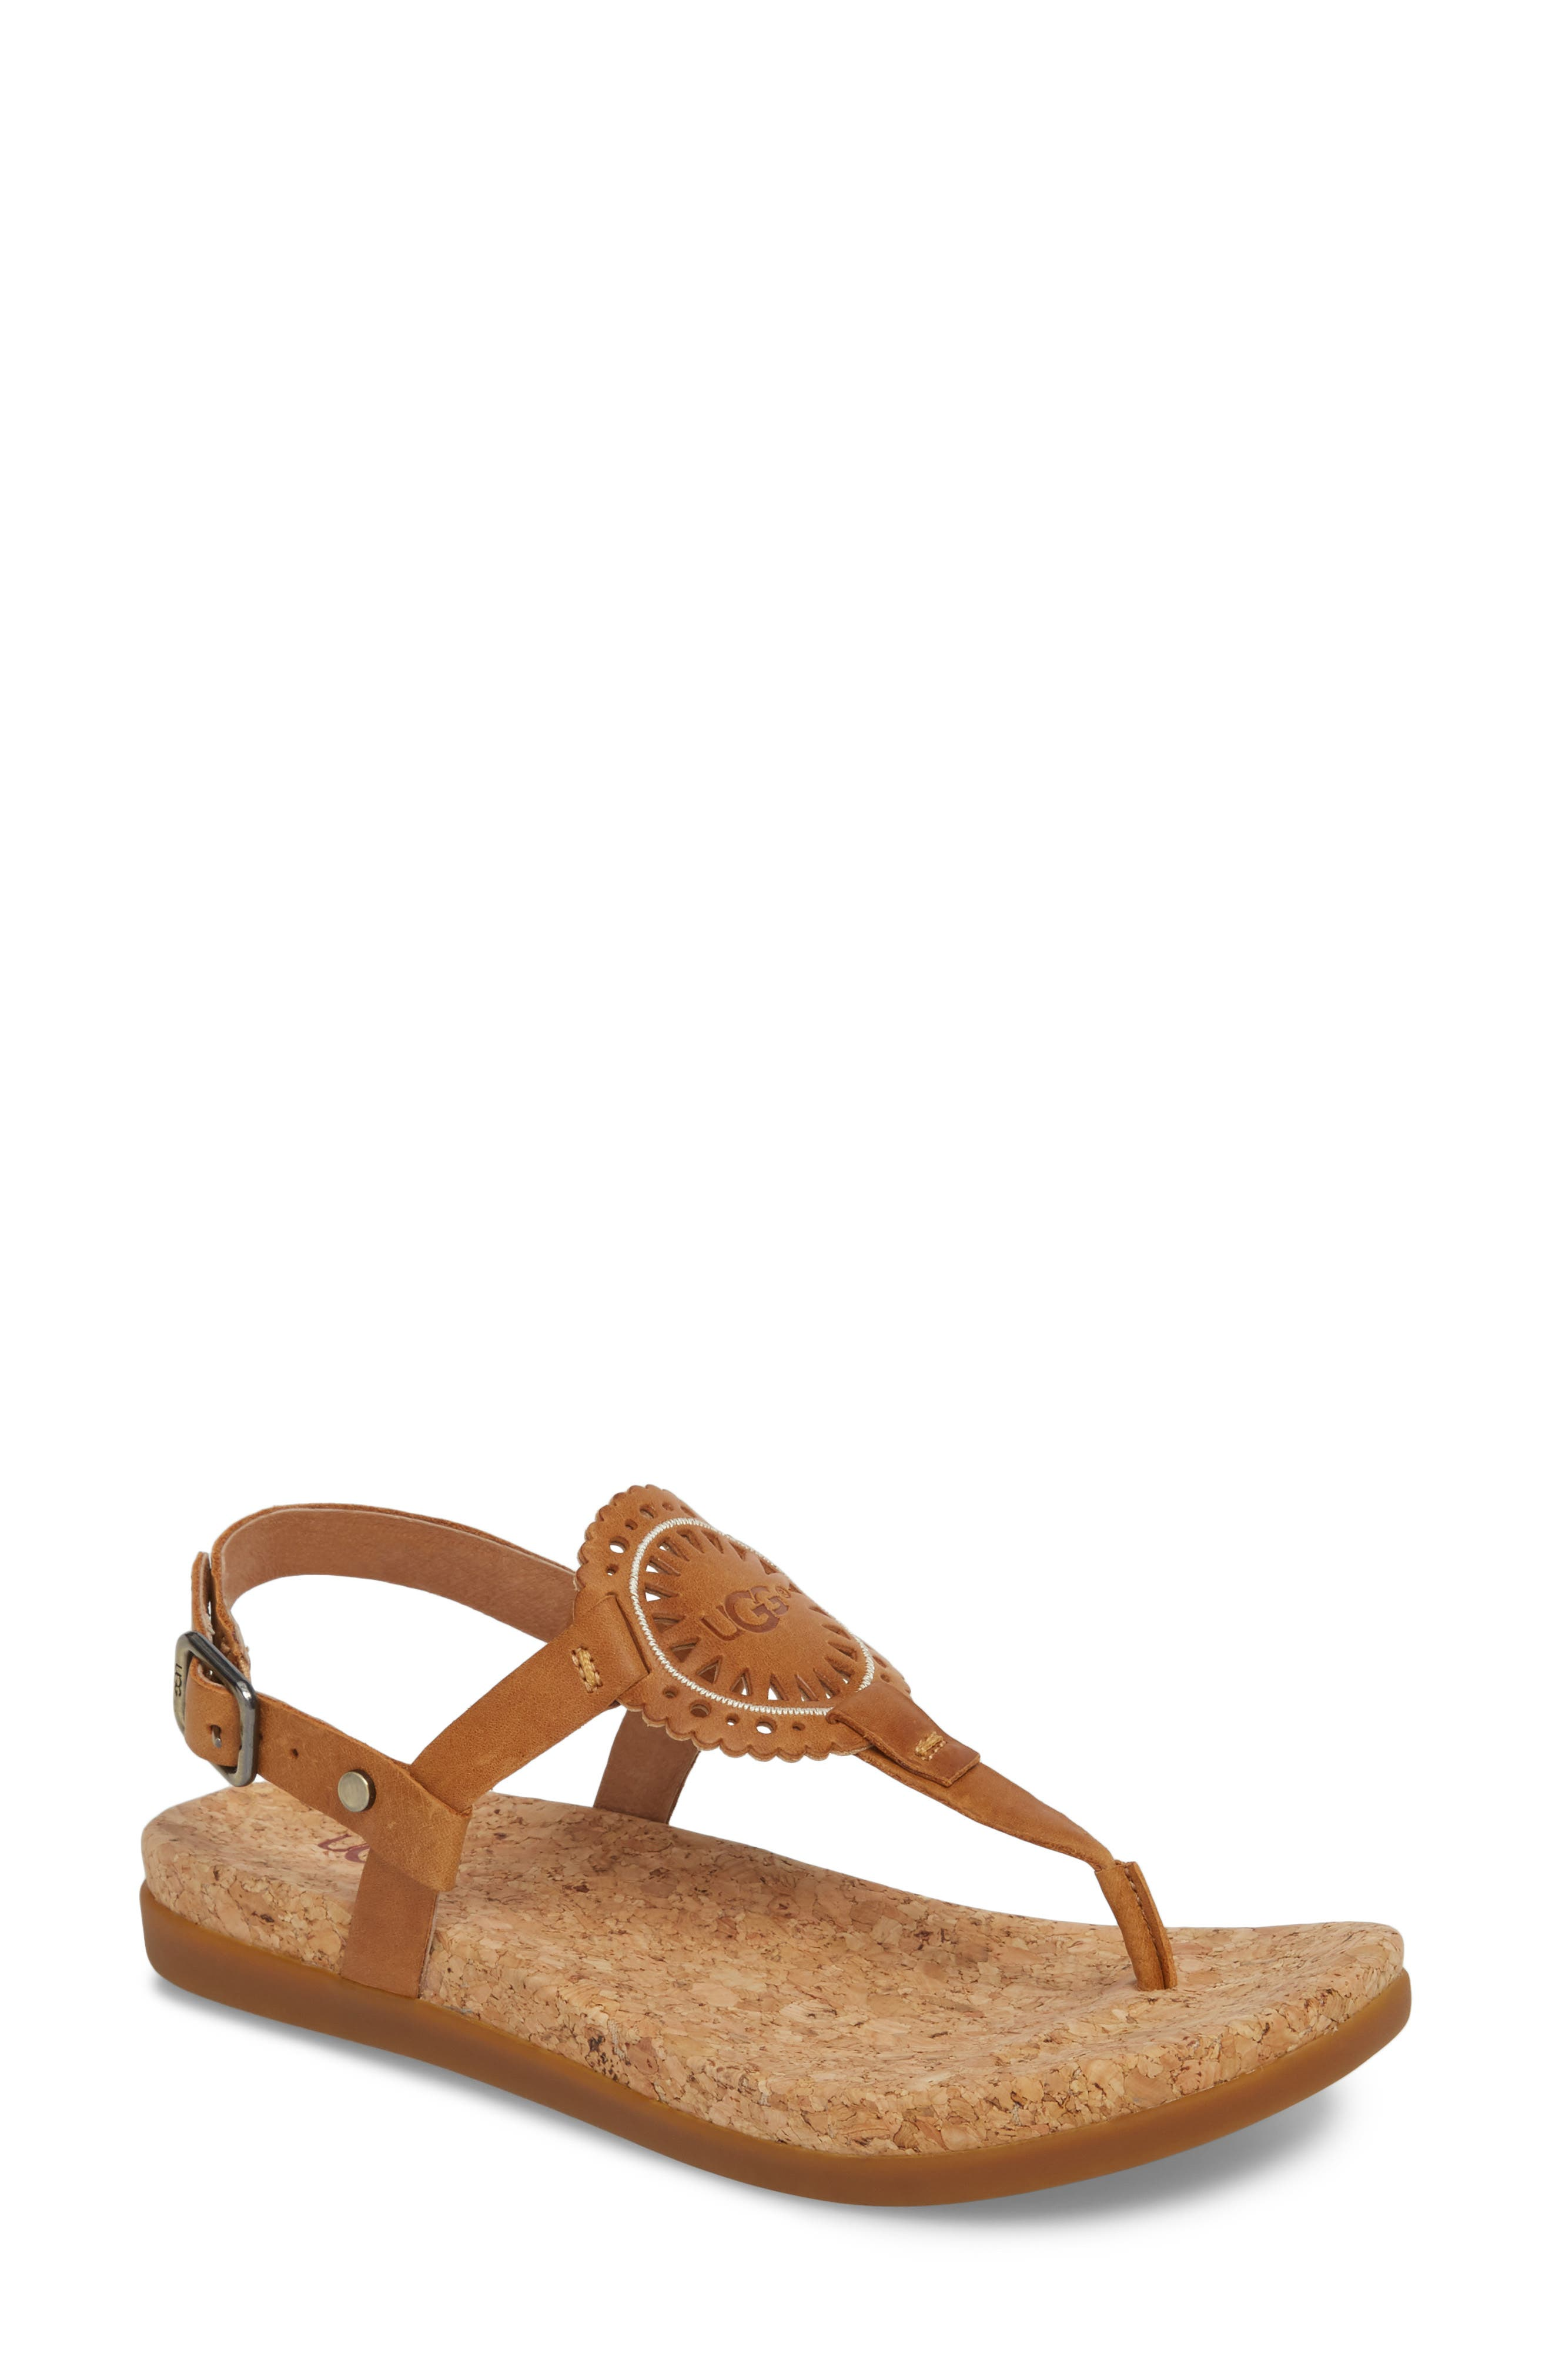 Ayden II T-Strap Sandal,                             Main thumbnail 1, color,                             Almond Leather